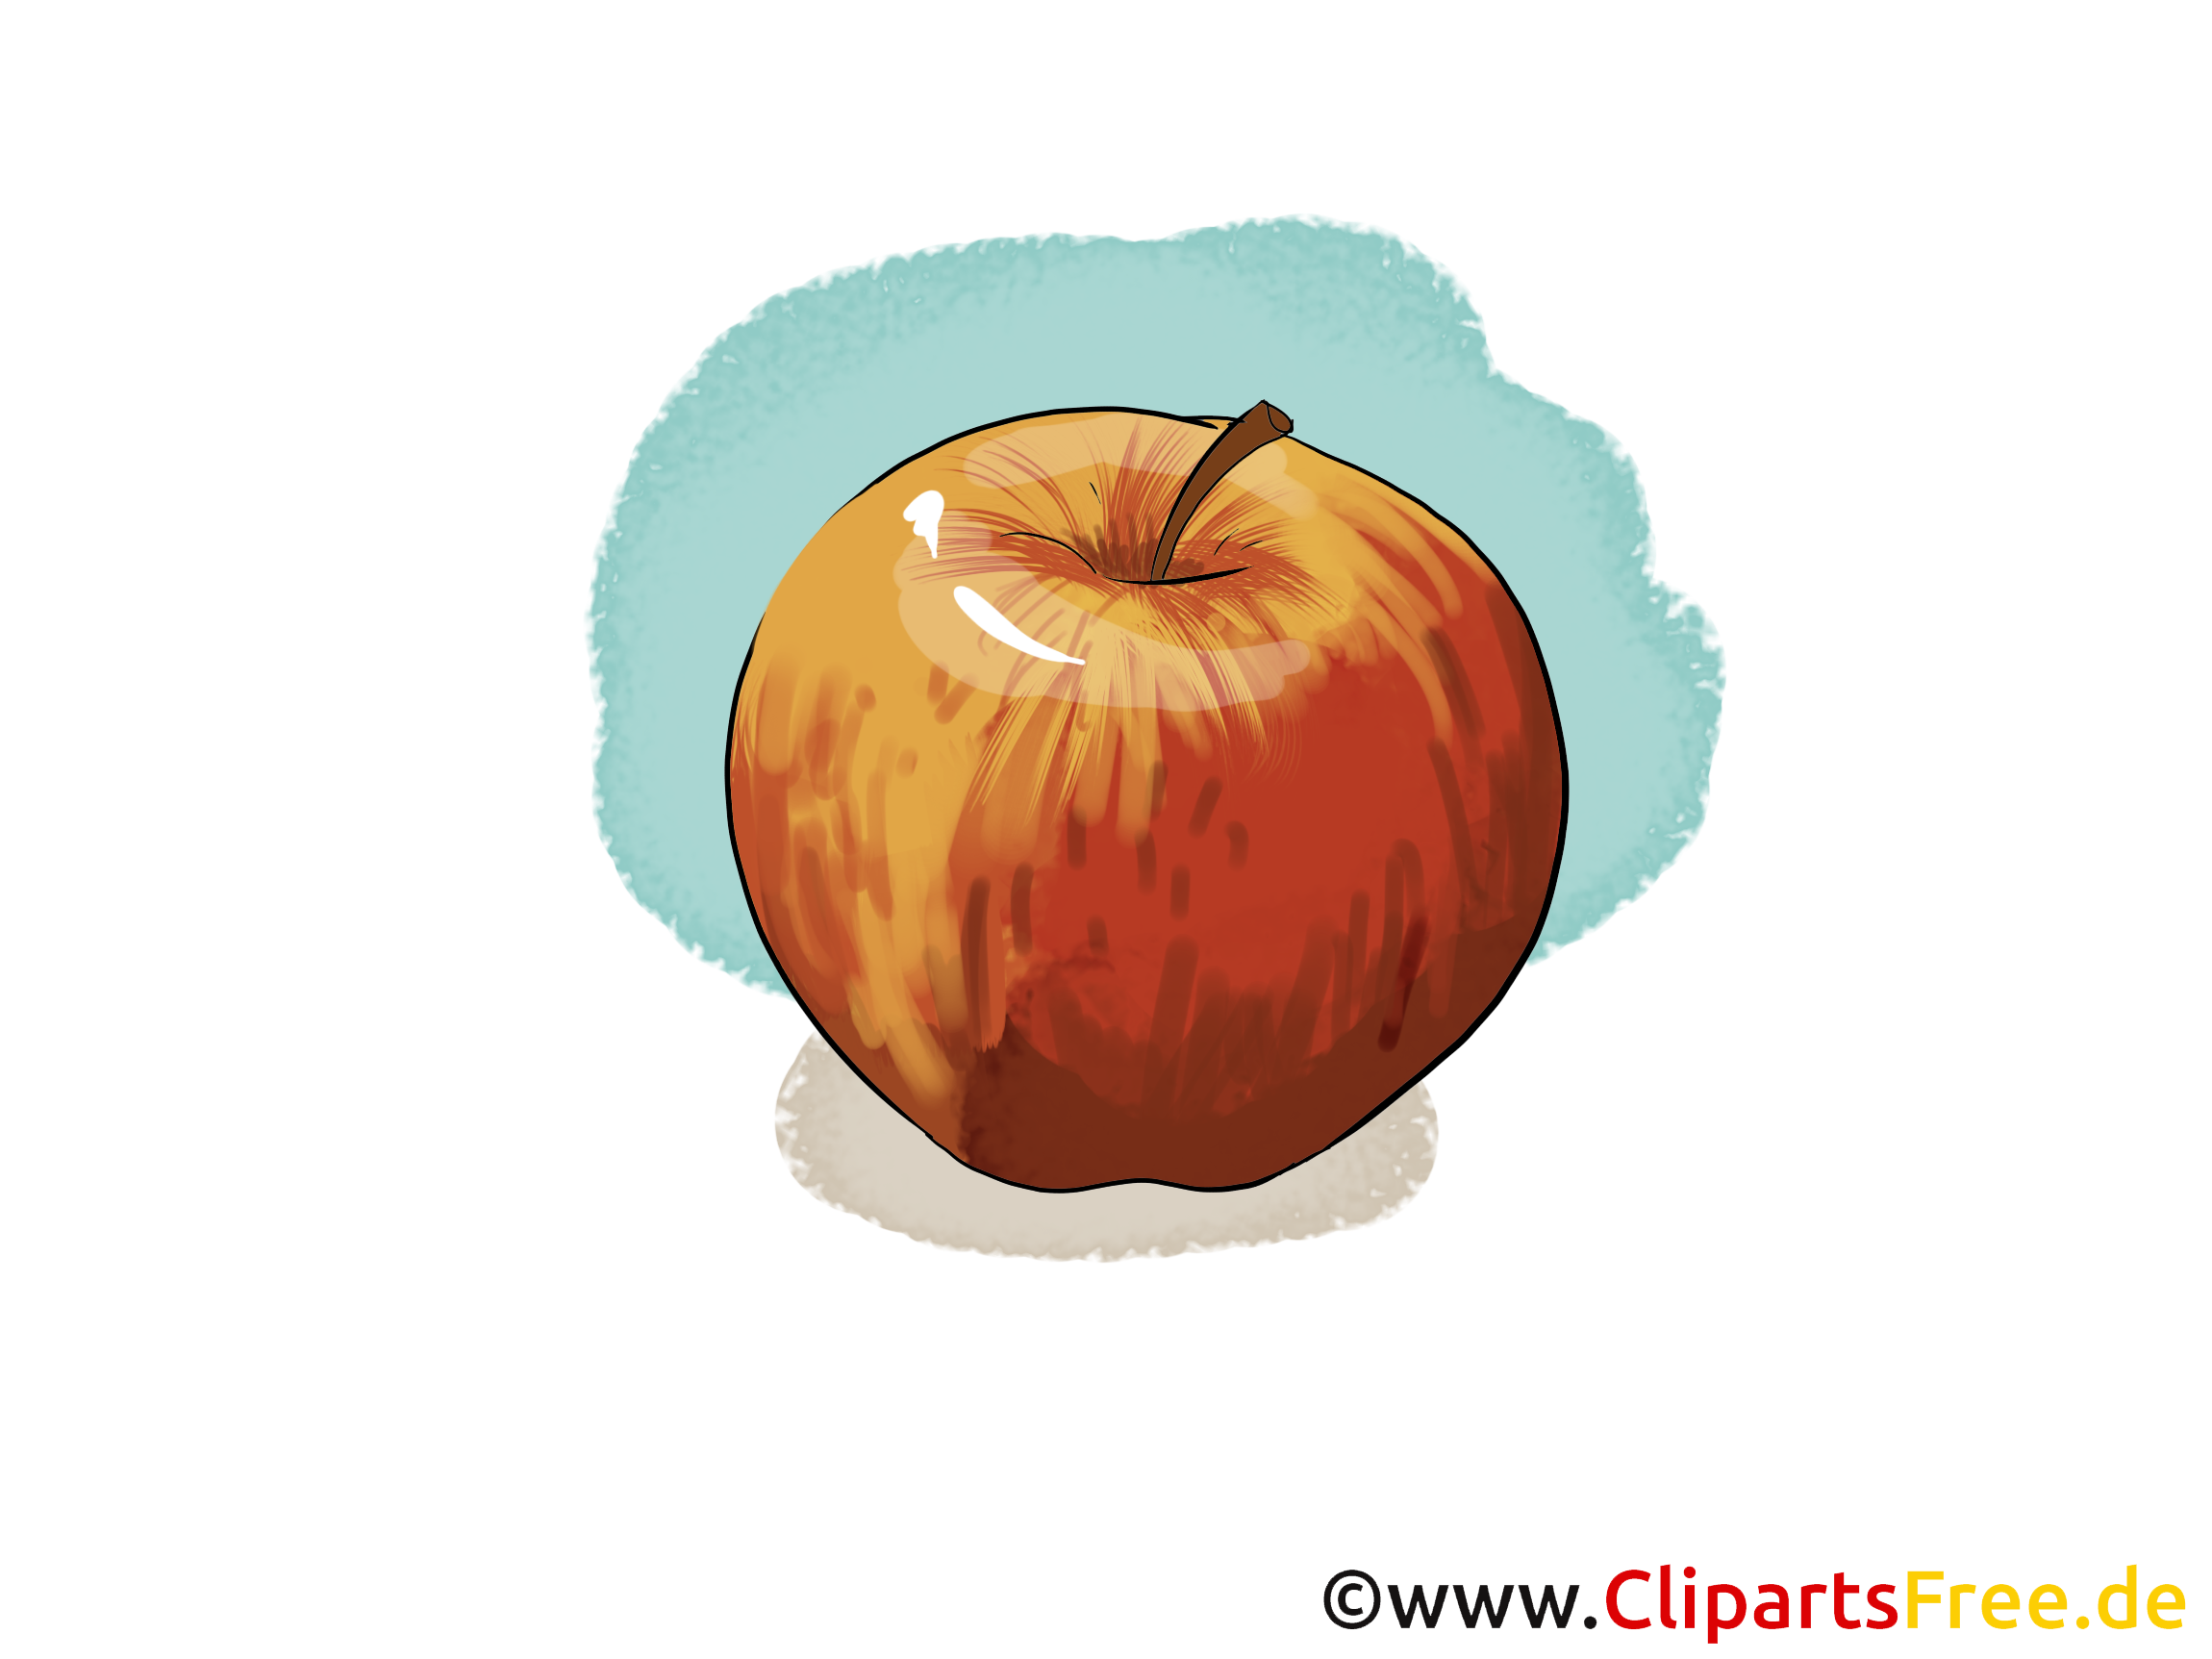 Pomme clip arts gratuits - Fruits illustrations